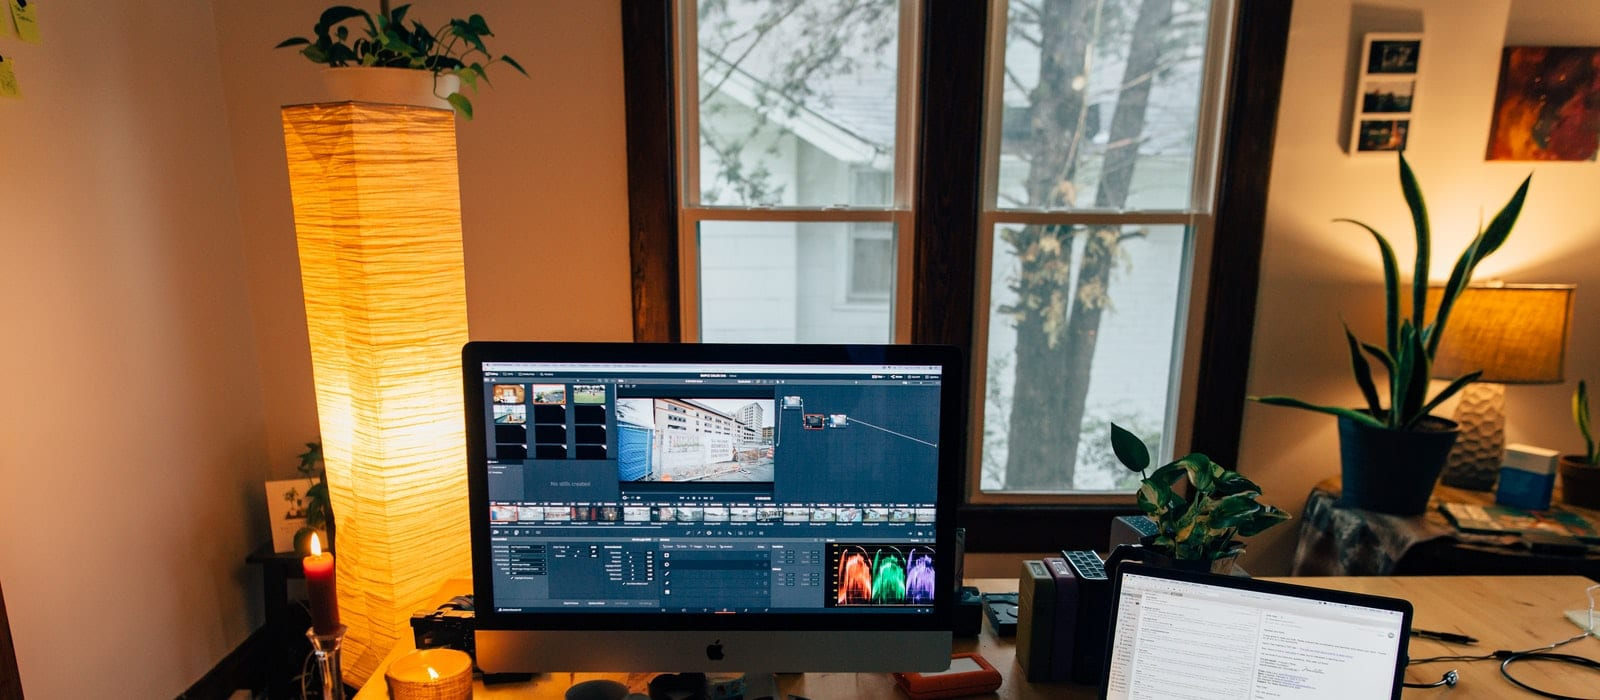 perfect editing set ups with laptops